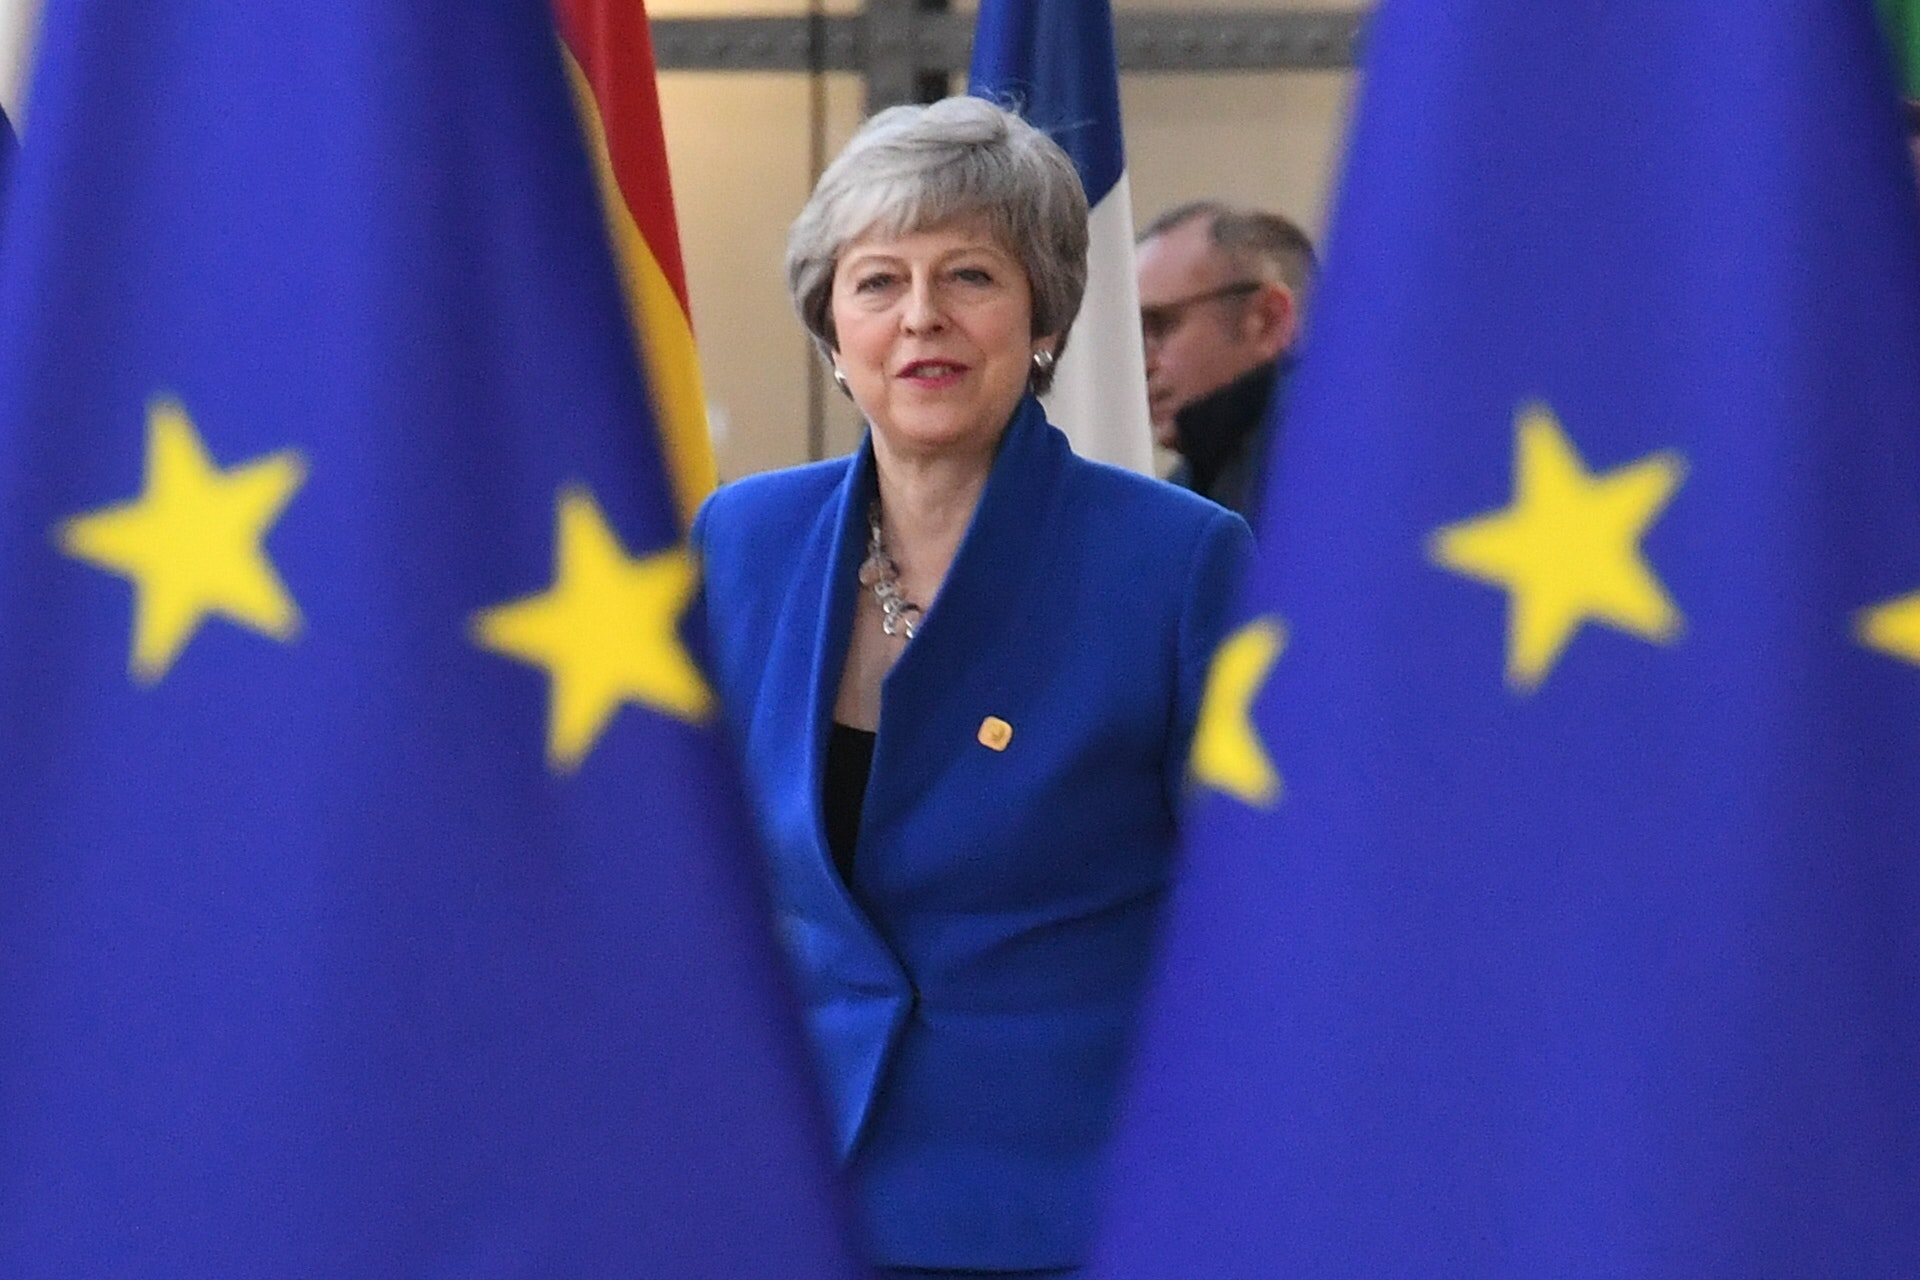 Theresa May, as the dying days of her premiership will be dominated by the issue of Europe